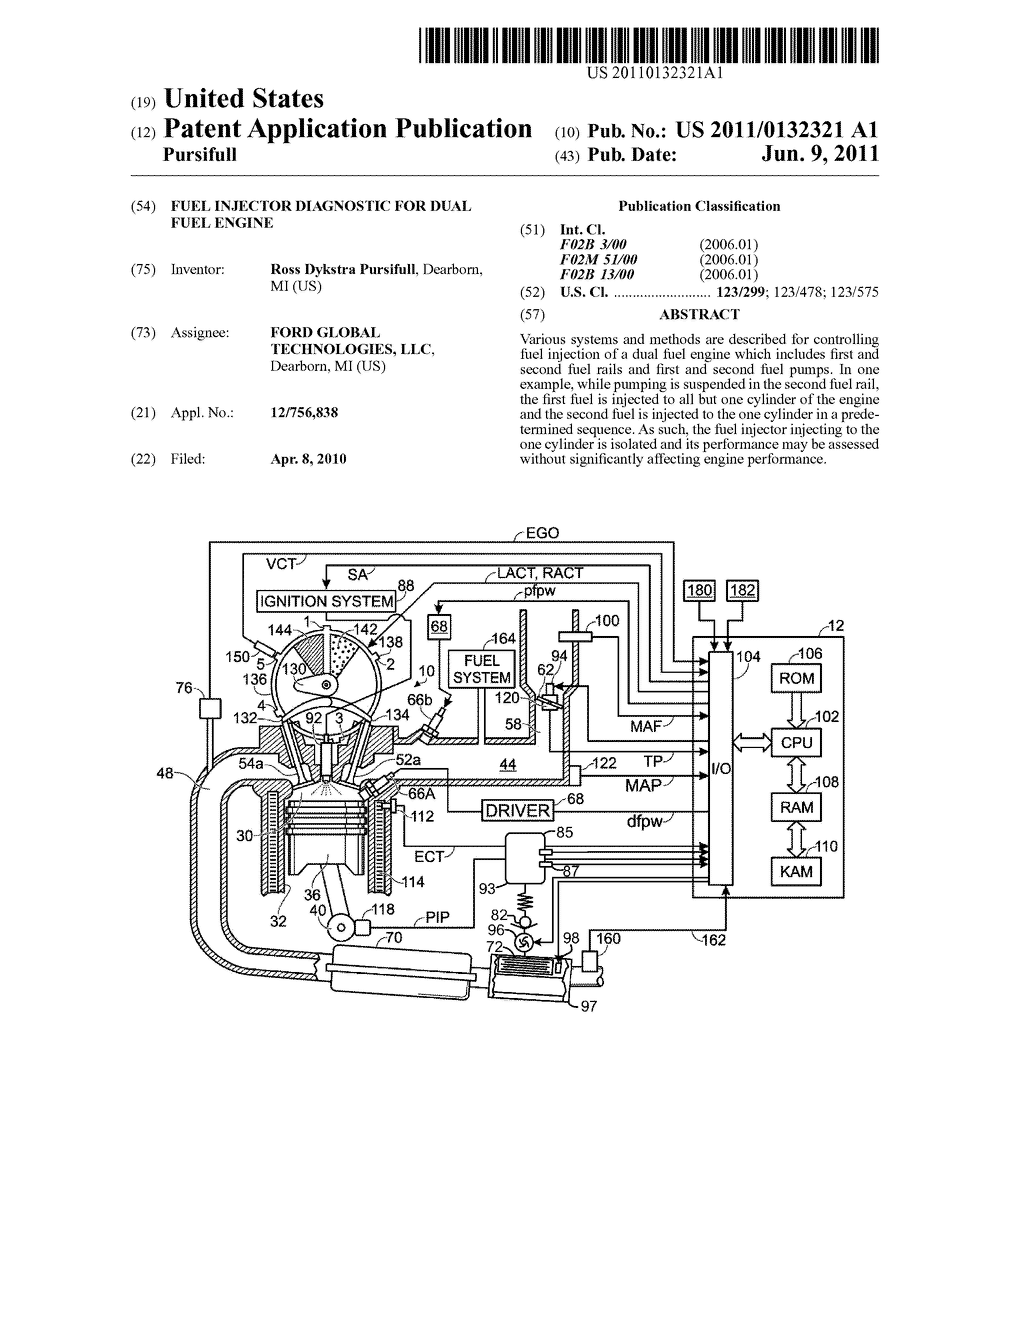 Fuel Injection Engine Diagram Wiring Library Dual Switch Injector Diagnostic For Schematic And Image 01